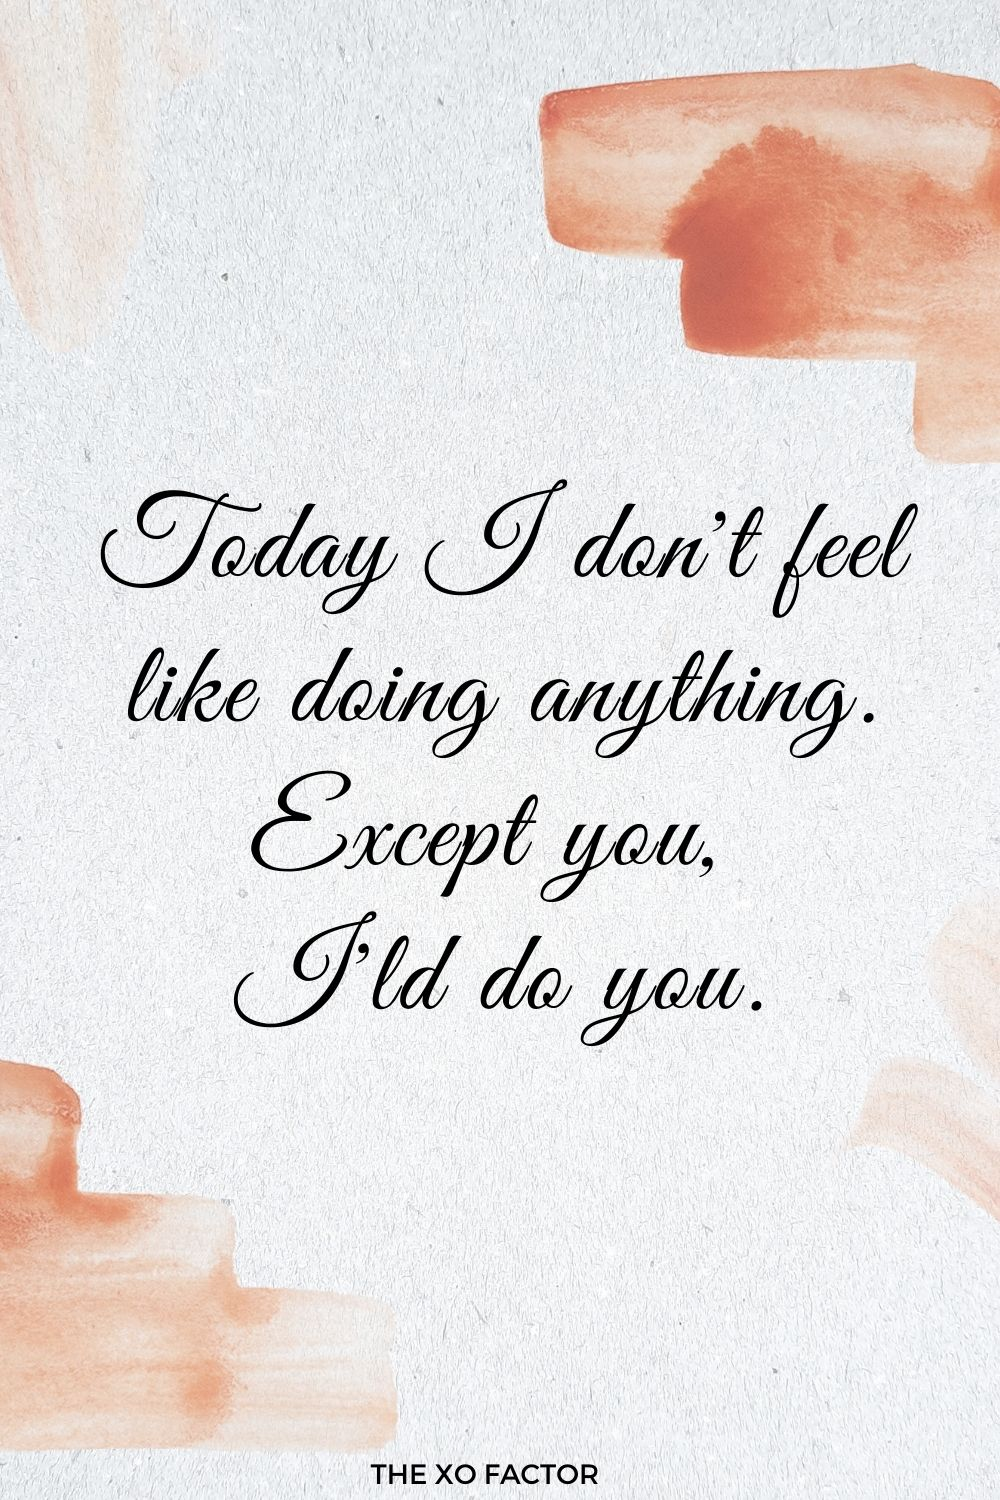 Today I don't feel like doing anything. Except you, I'd do you.